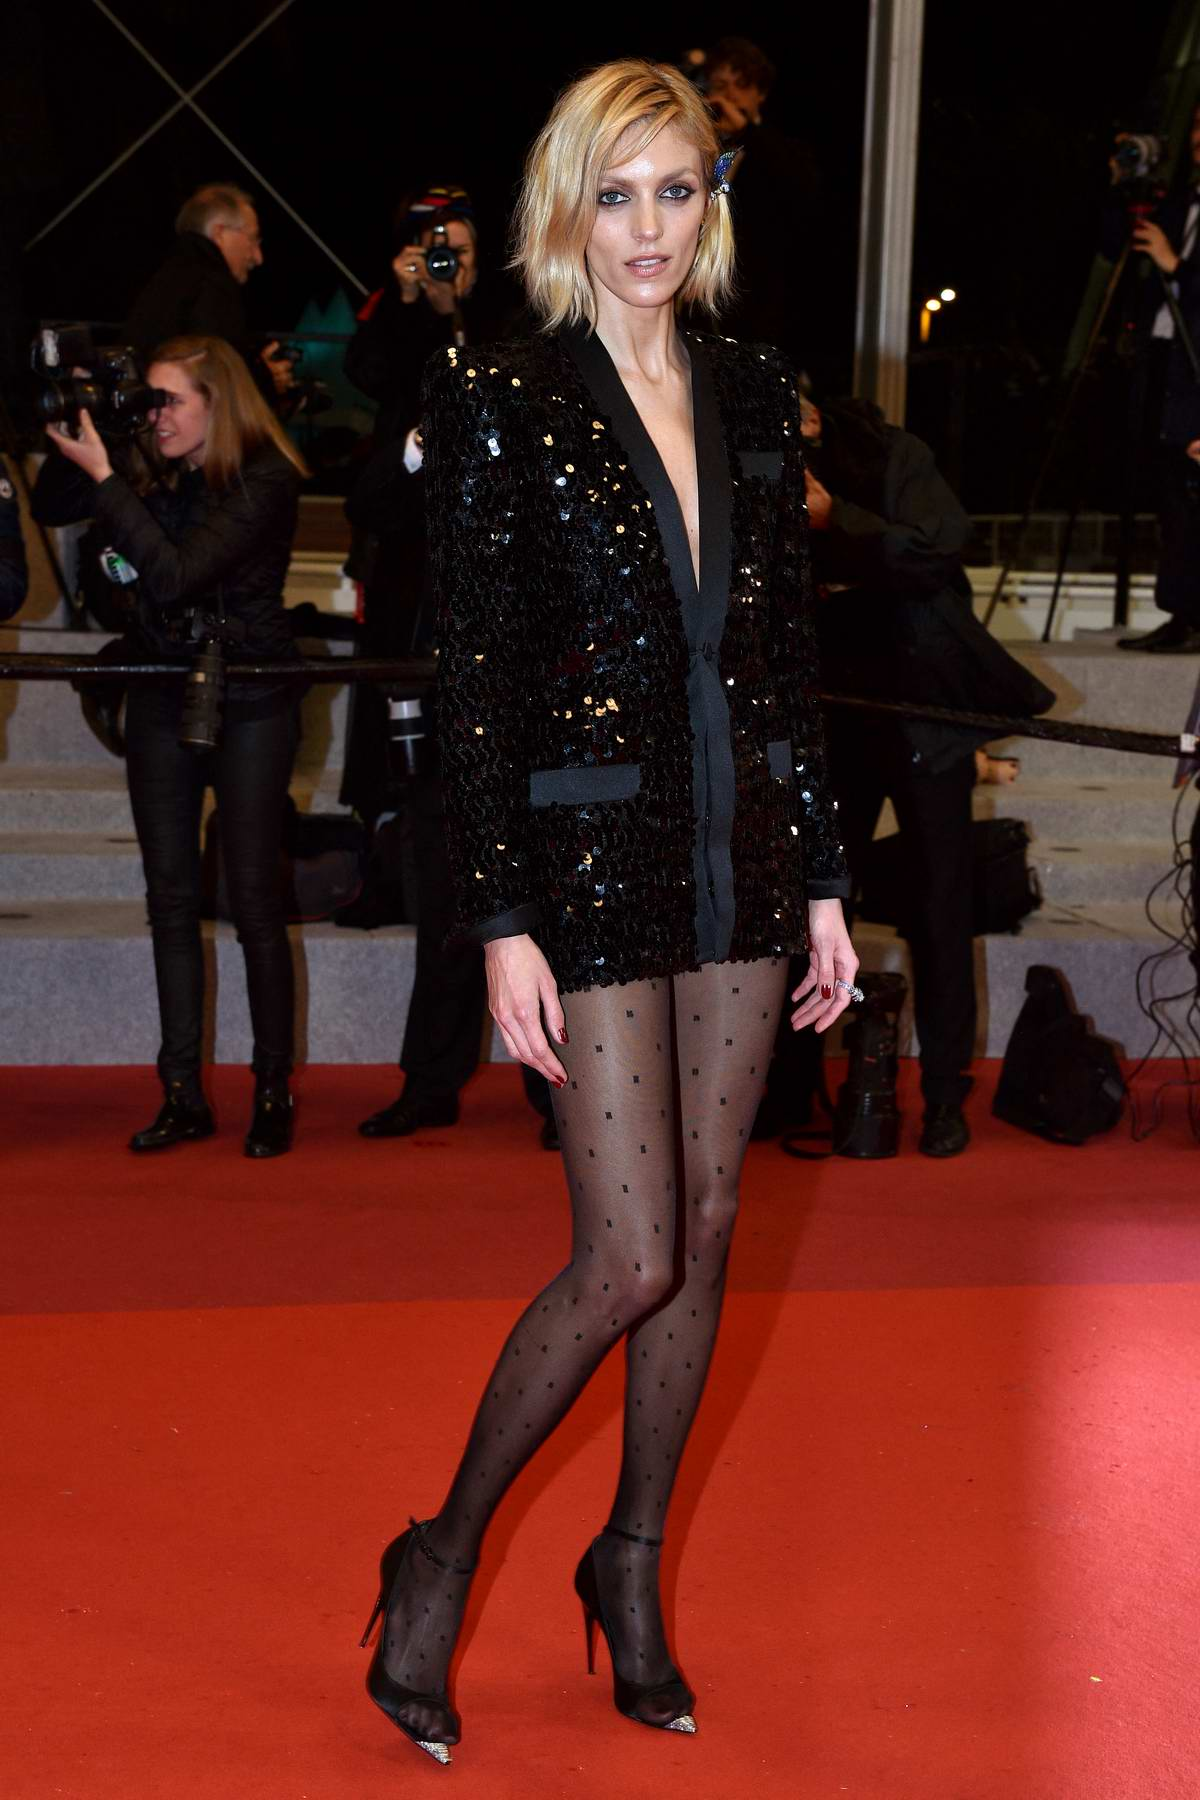 Anja Rubik attends the screening of 'Lux Aeterna' during the 72nd annual Cannes Film Festival in Cannes in Cannes, France